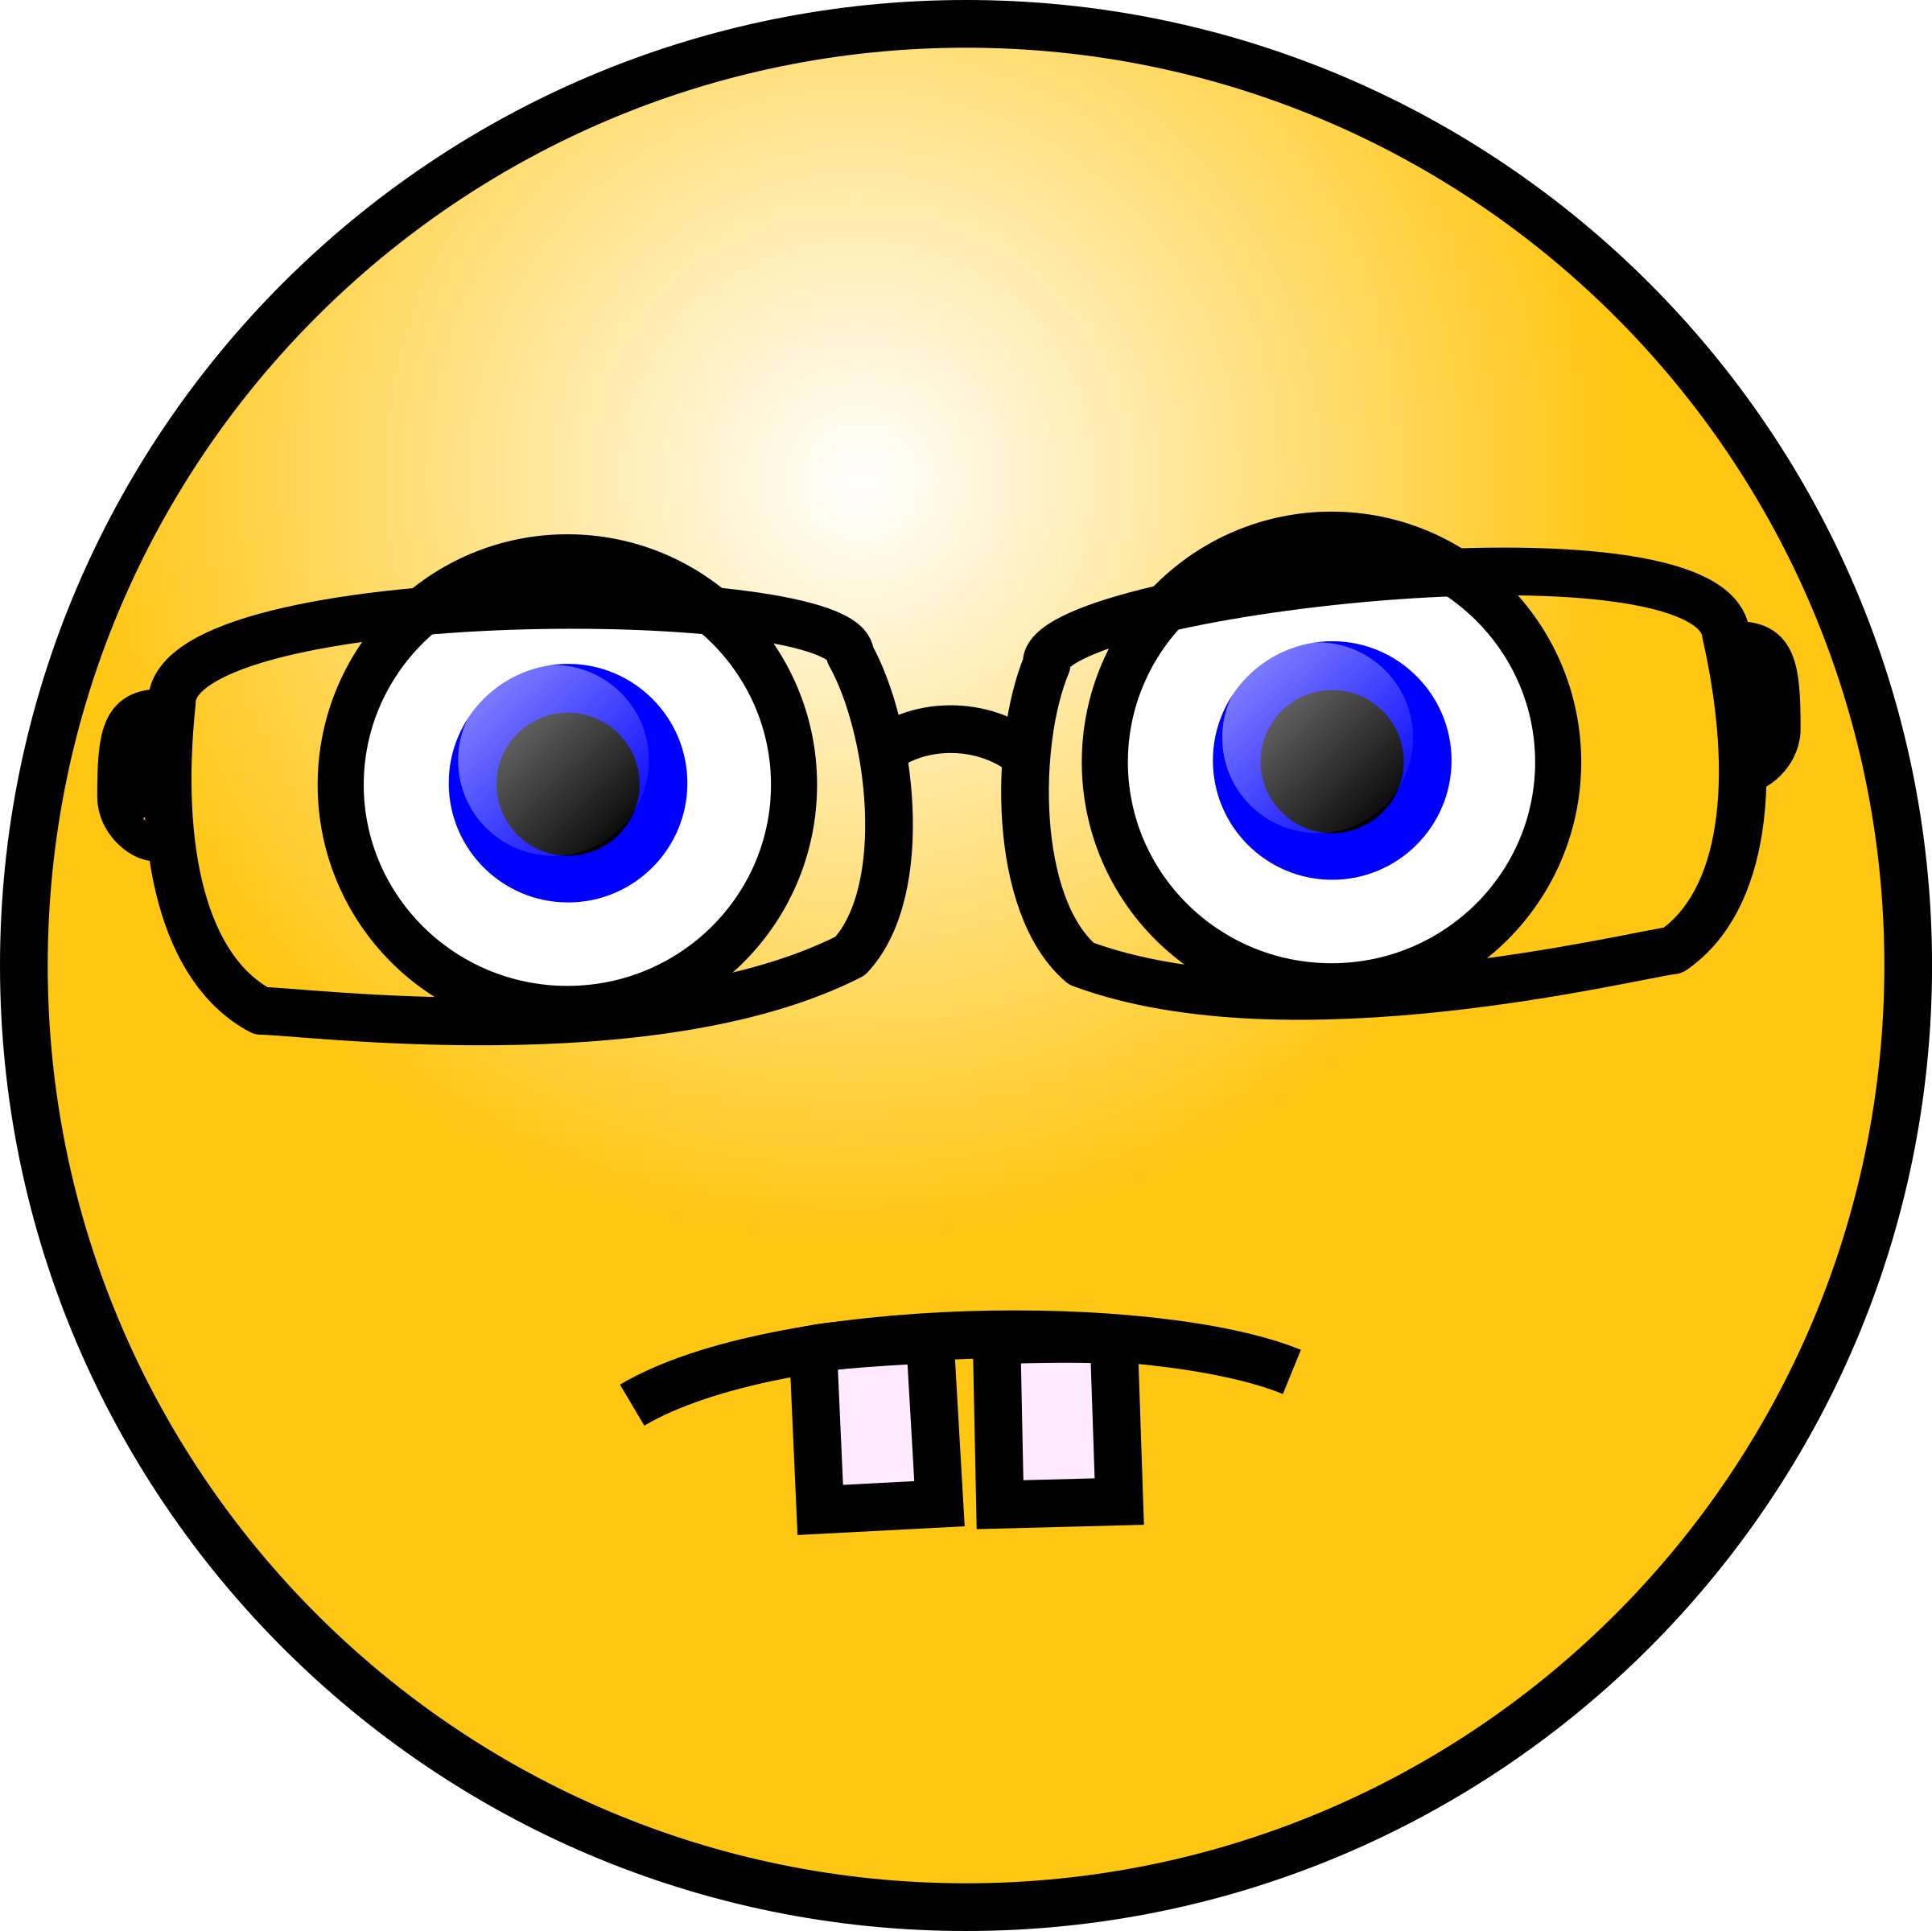 Nerd emoticon png. Emoticons face icons free